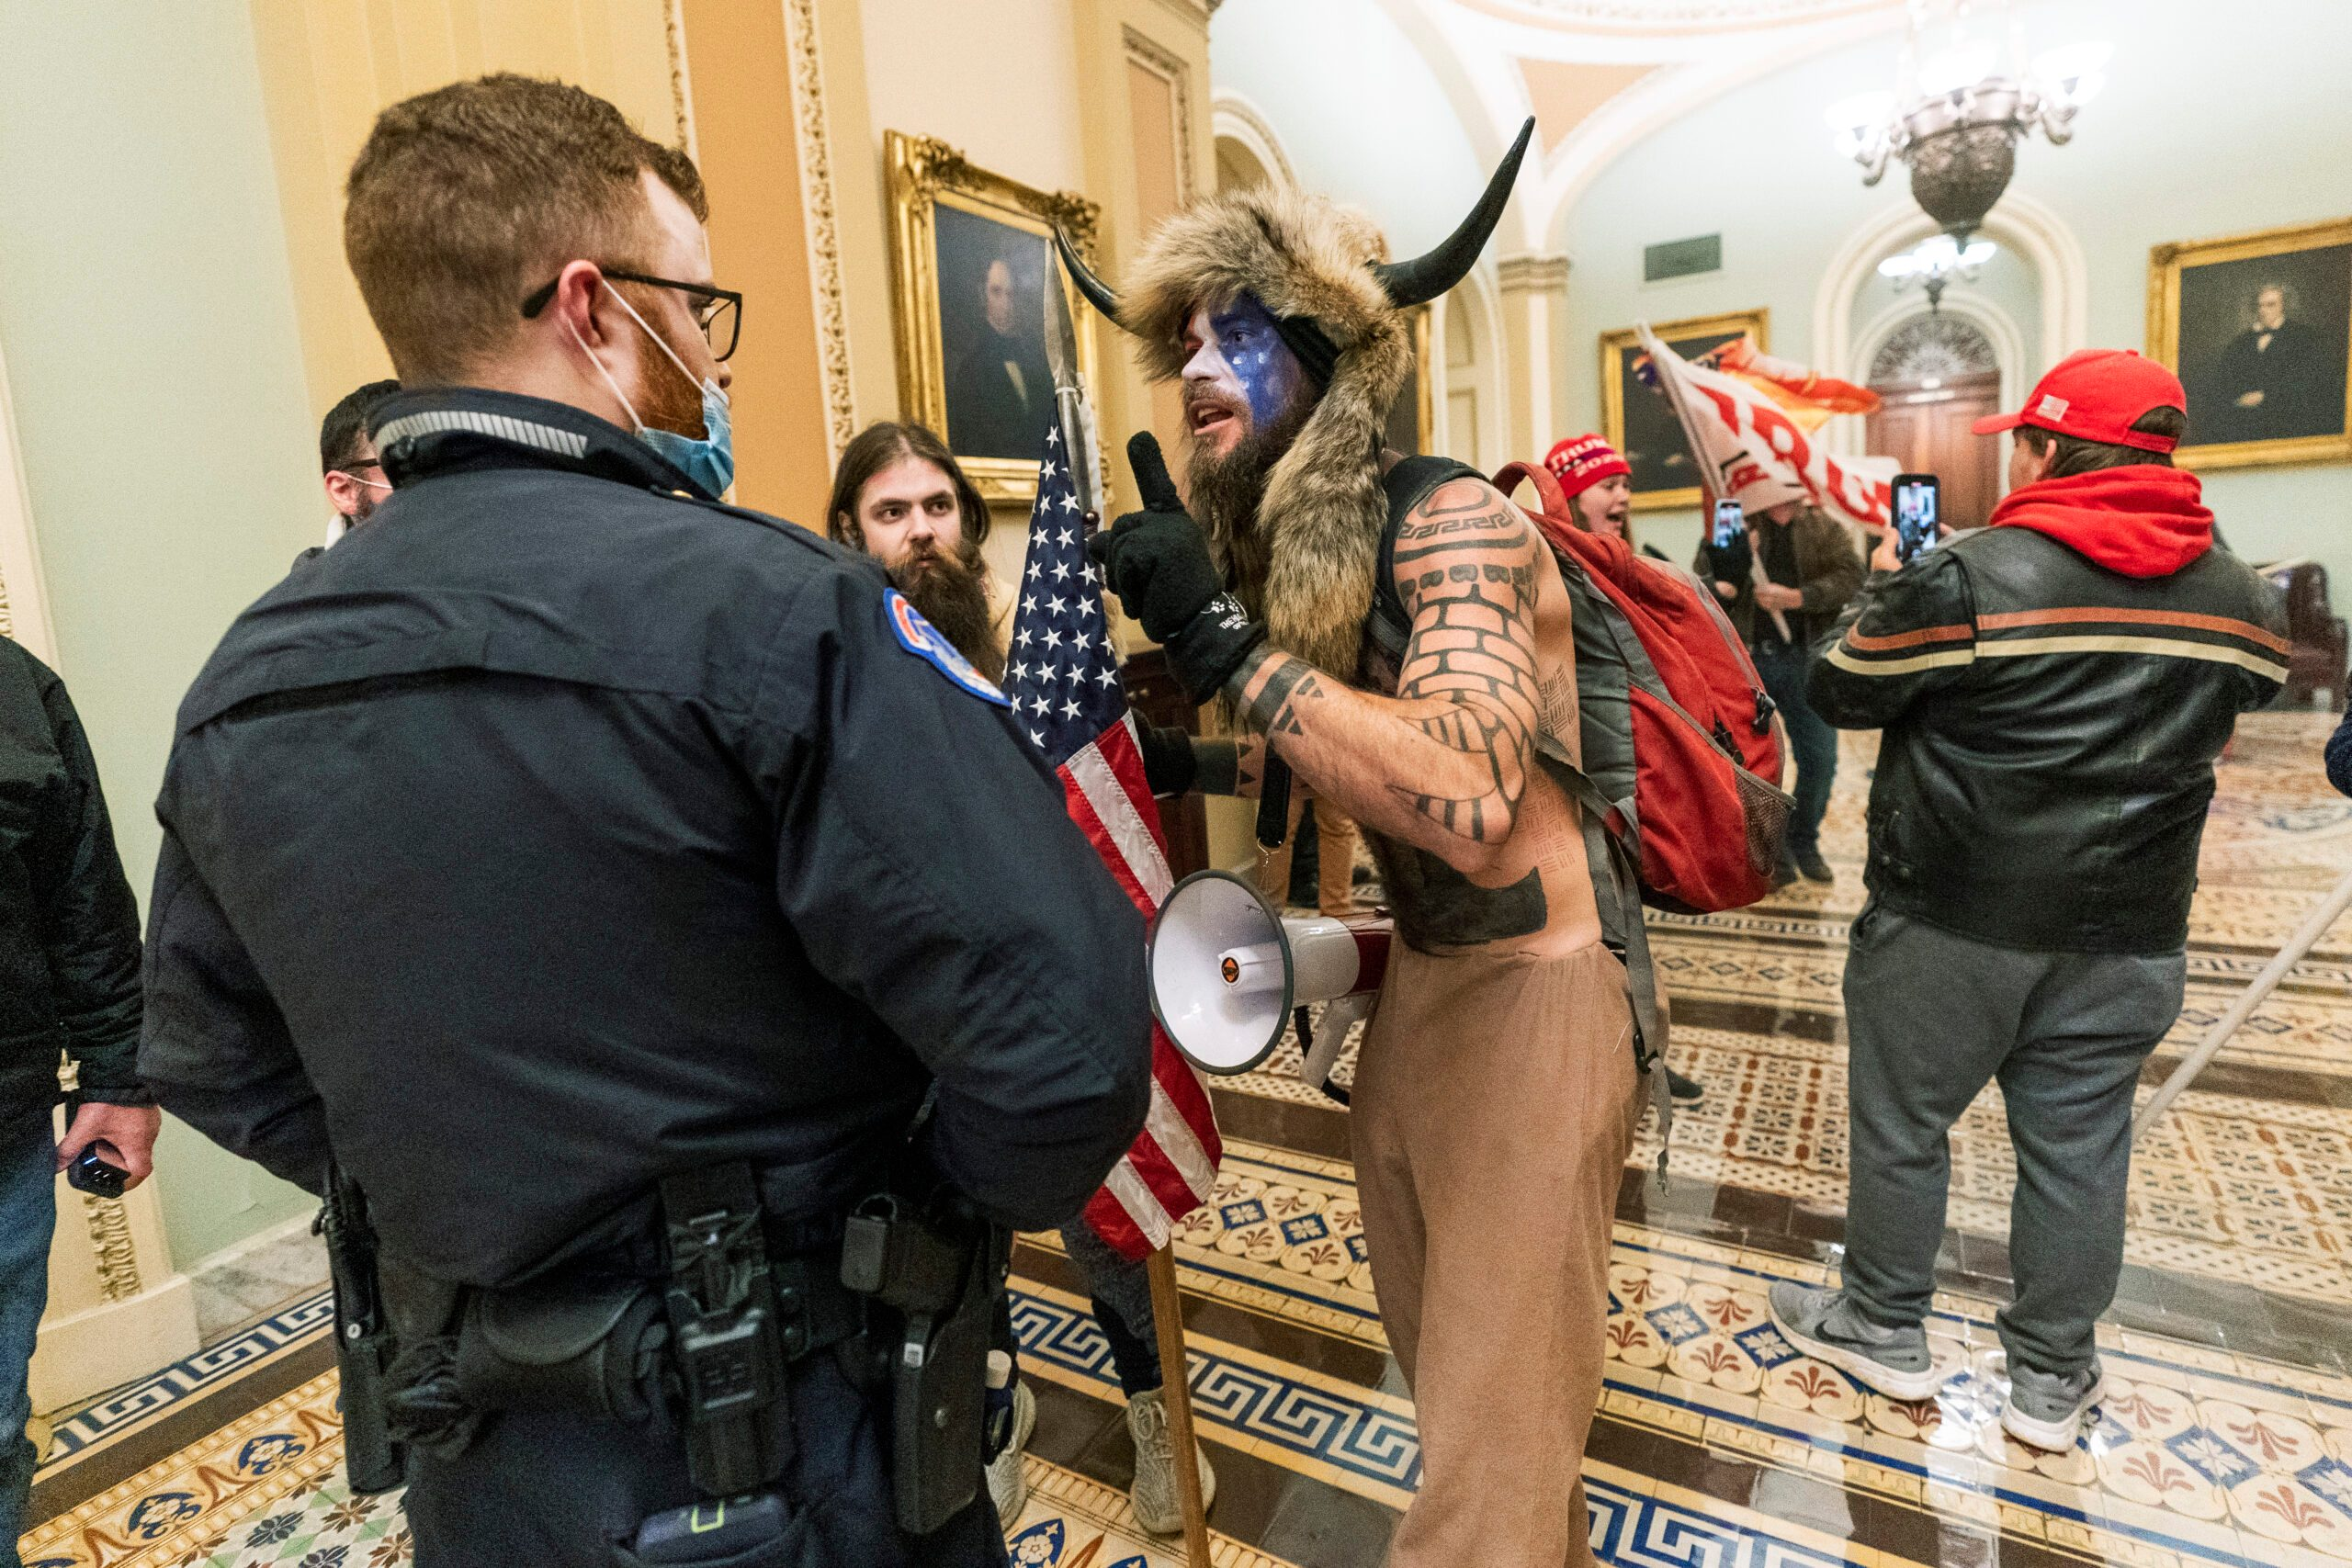 Man Accused of Stealing Pelosi's Lectern Charged in Invasion